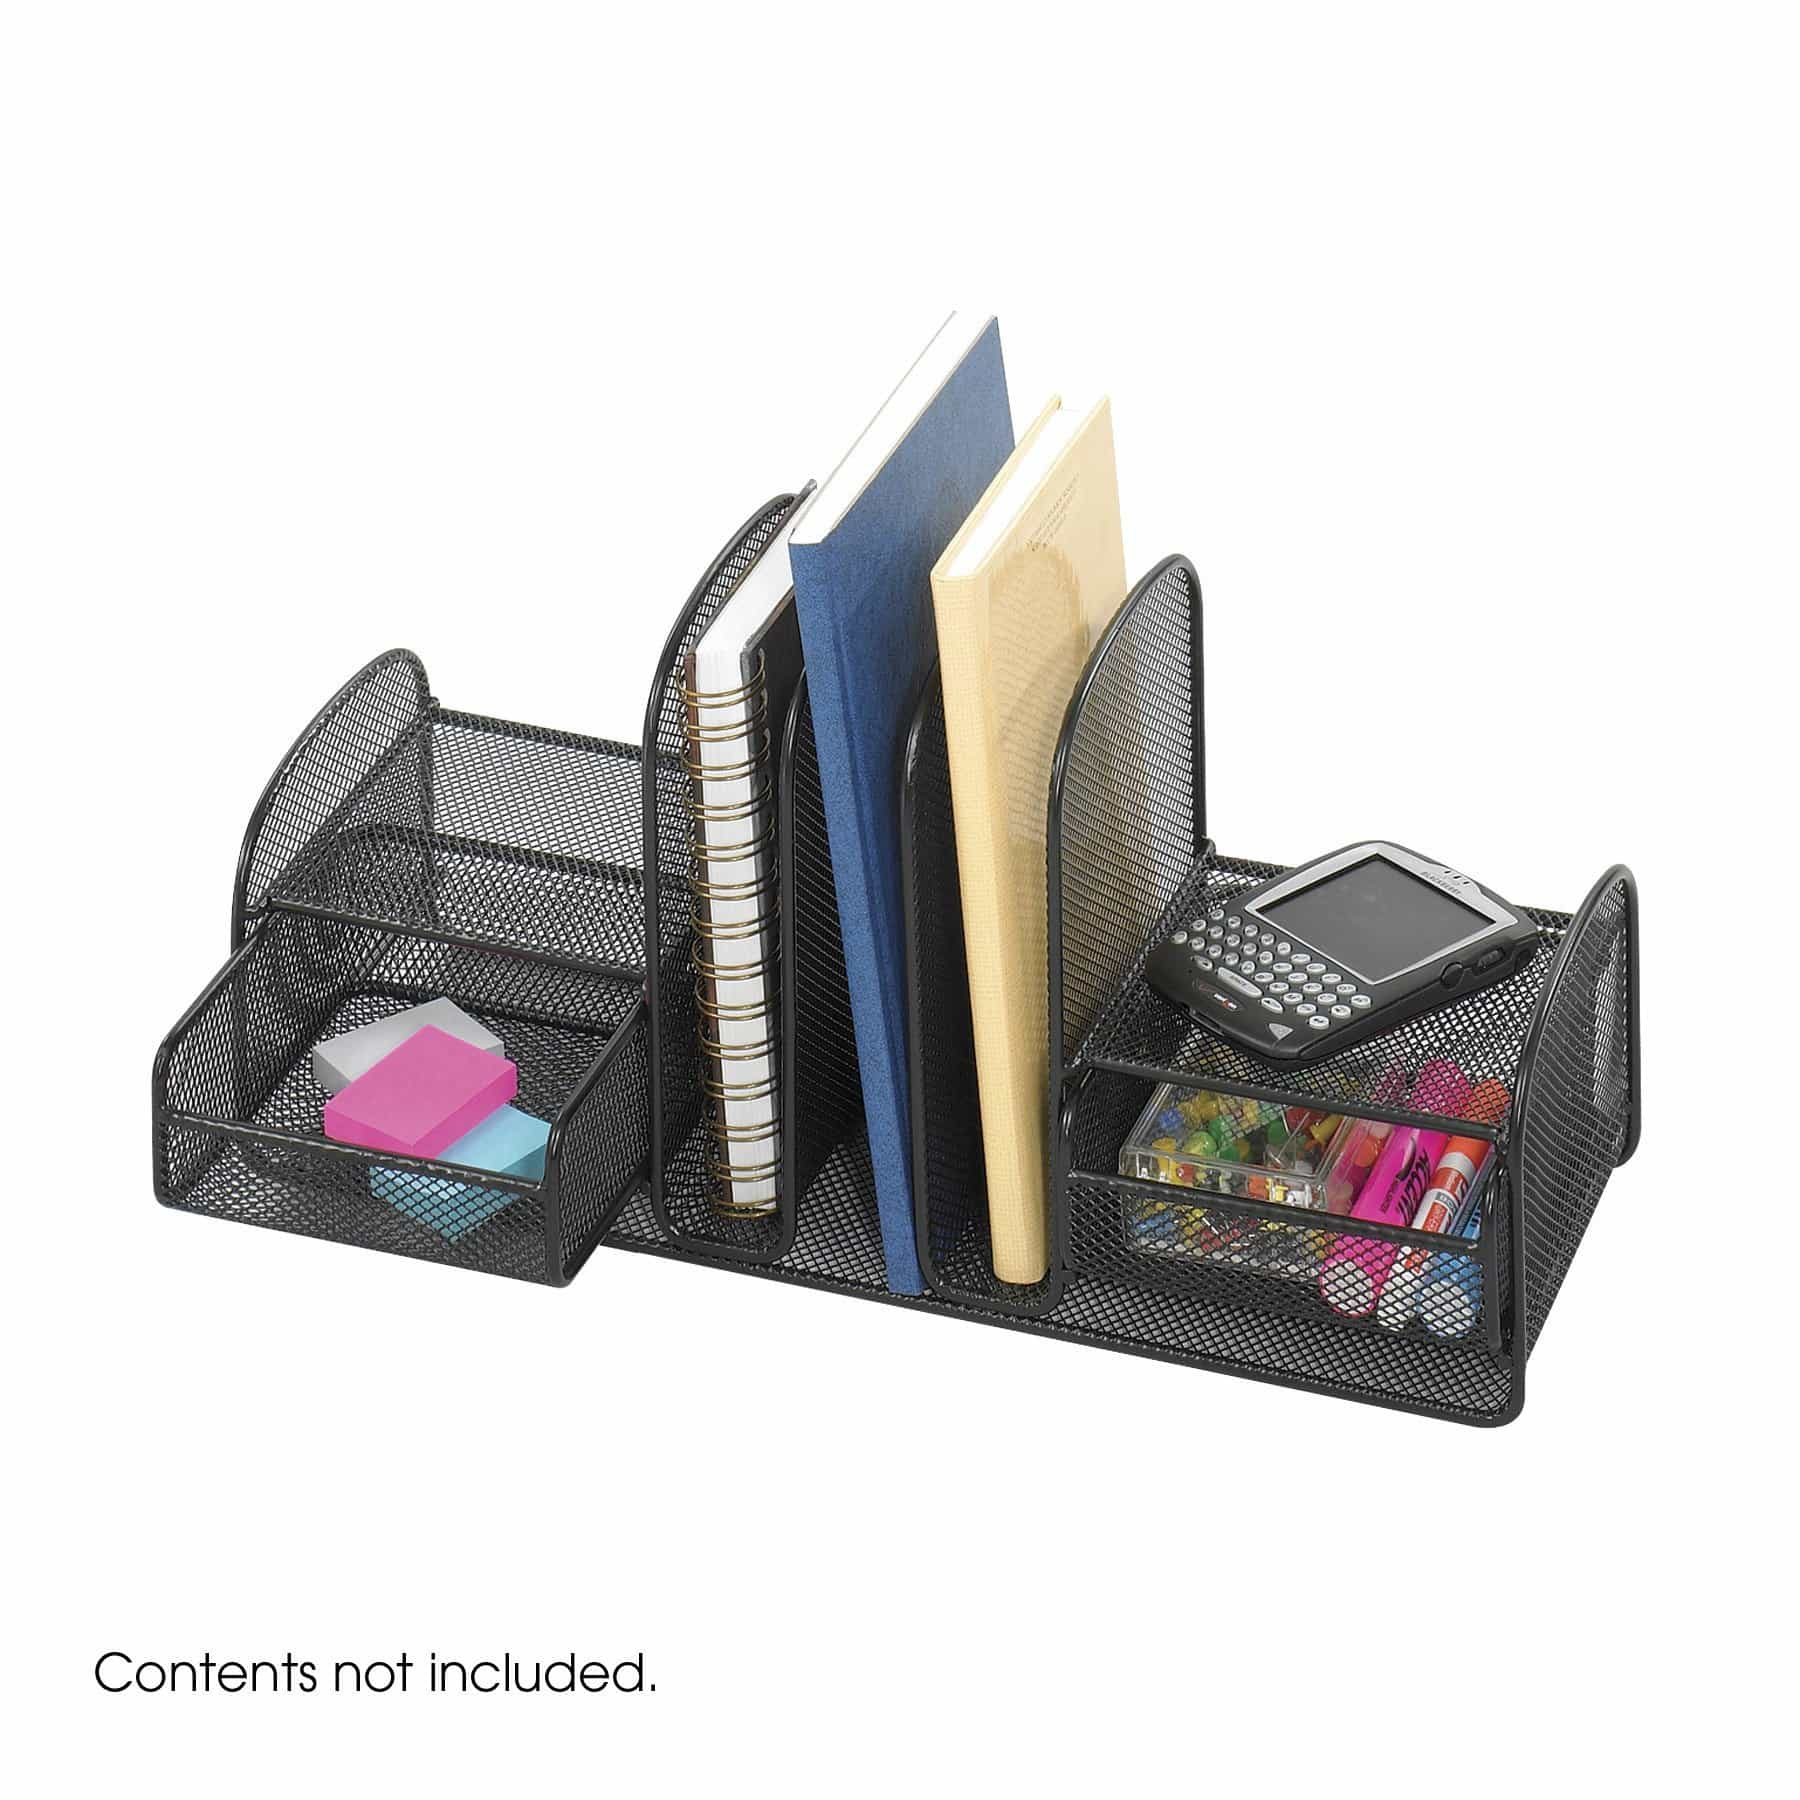 bedinhome - 3263BL Onyx Office Supply Three Upright Vertical Sections/Two Baskets Wire Mesh Desktop Black Organizer - Safco - Desktop Organizer